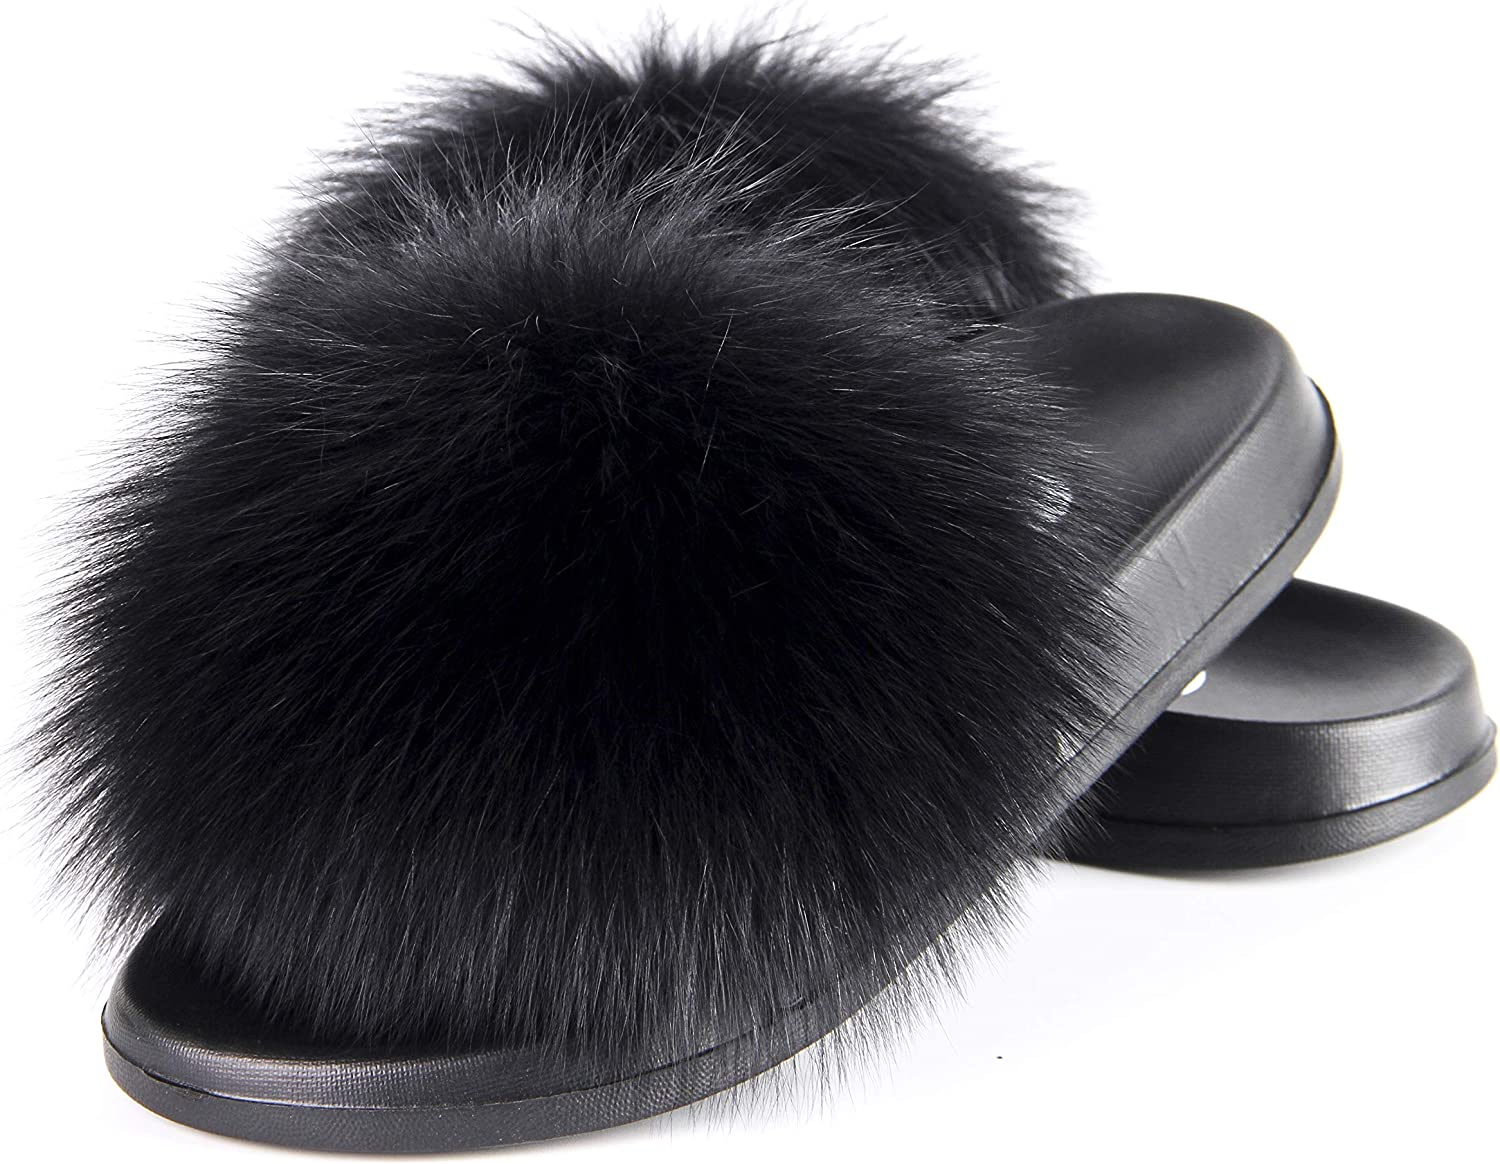 Womens Real Fox Fur Slippers Slides Sandals Indoor Outoor Beach Casual Shoes